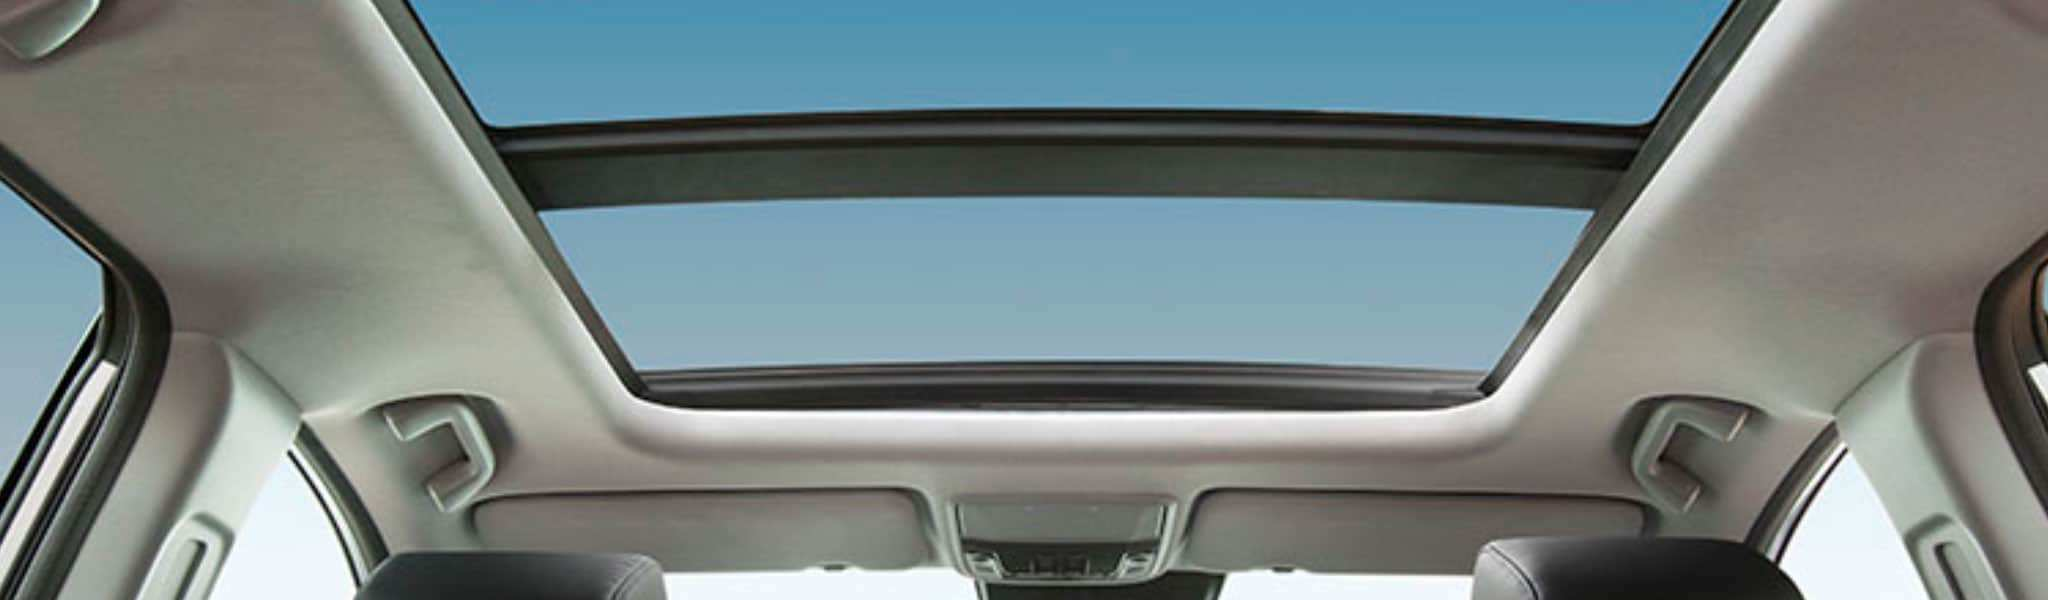 One-touch panoramic moonroof on the Honda CR-V